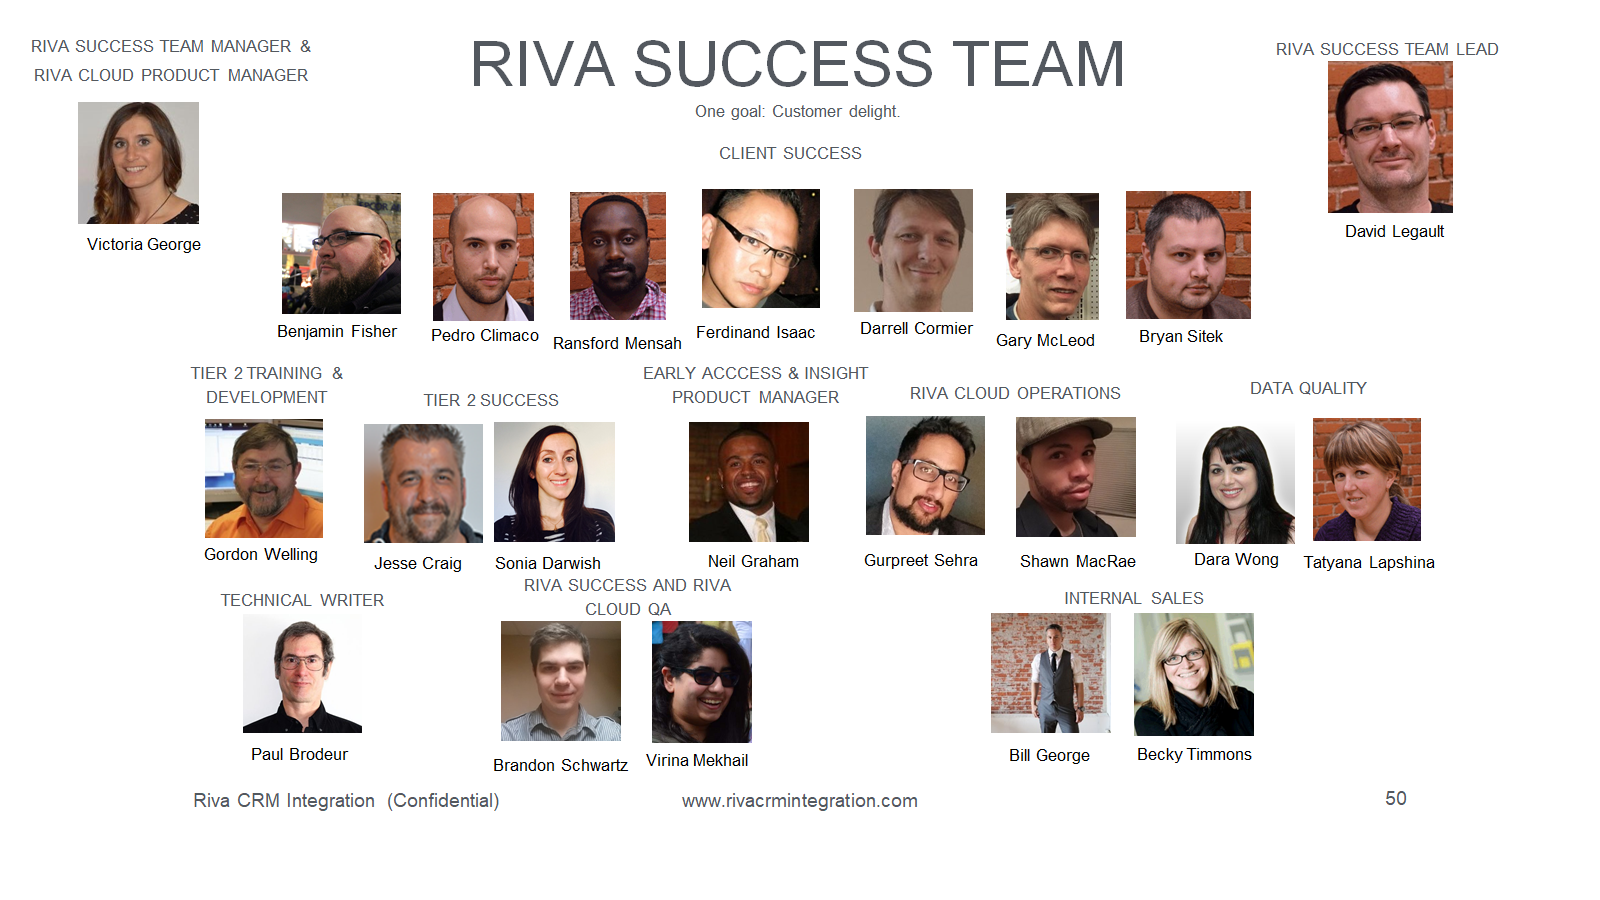 riva success